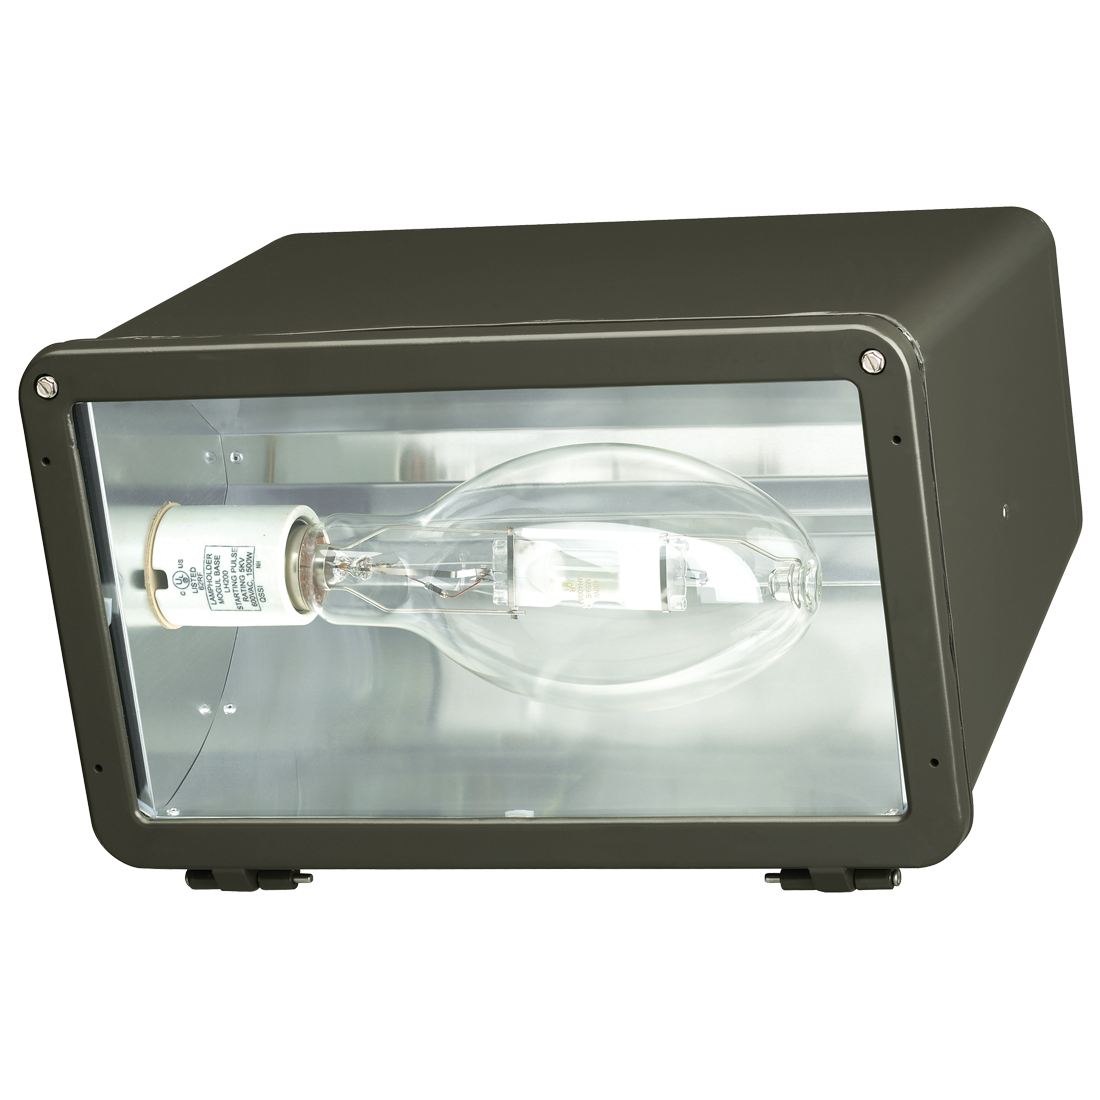 Atlas Lighting Products FLDX 250PQPK 250W Metal Halide Floodlight